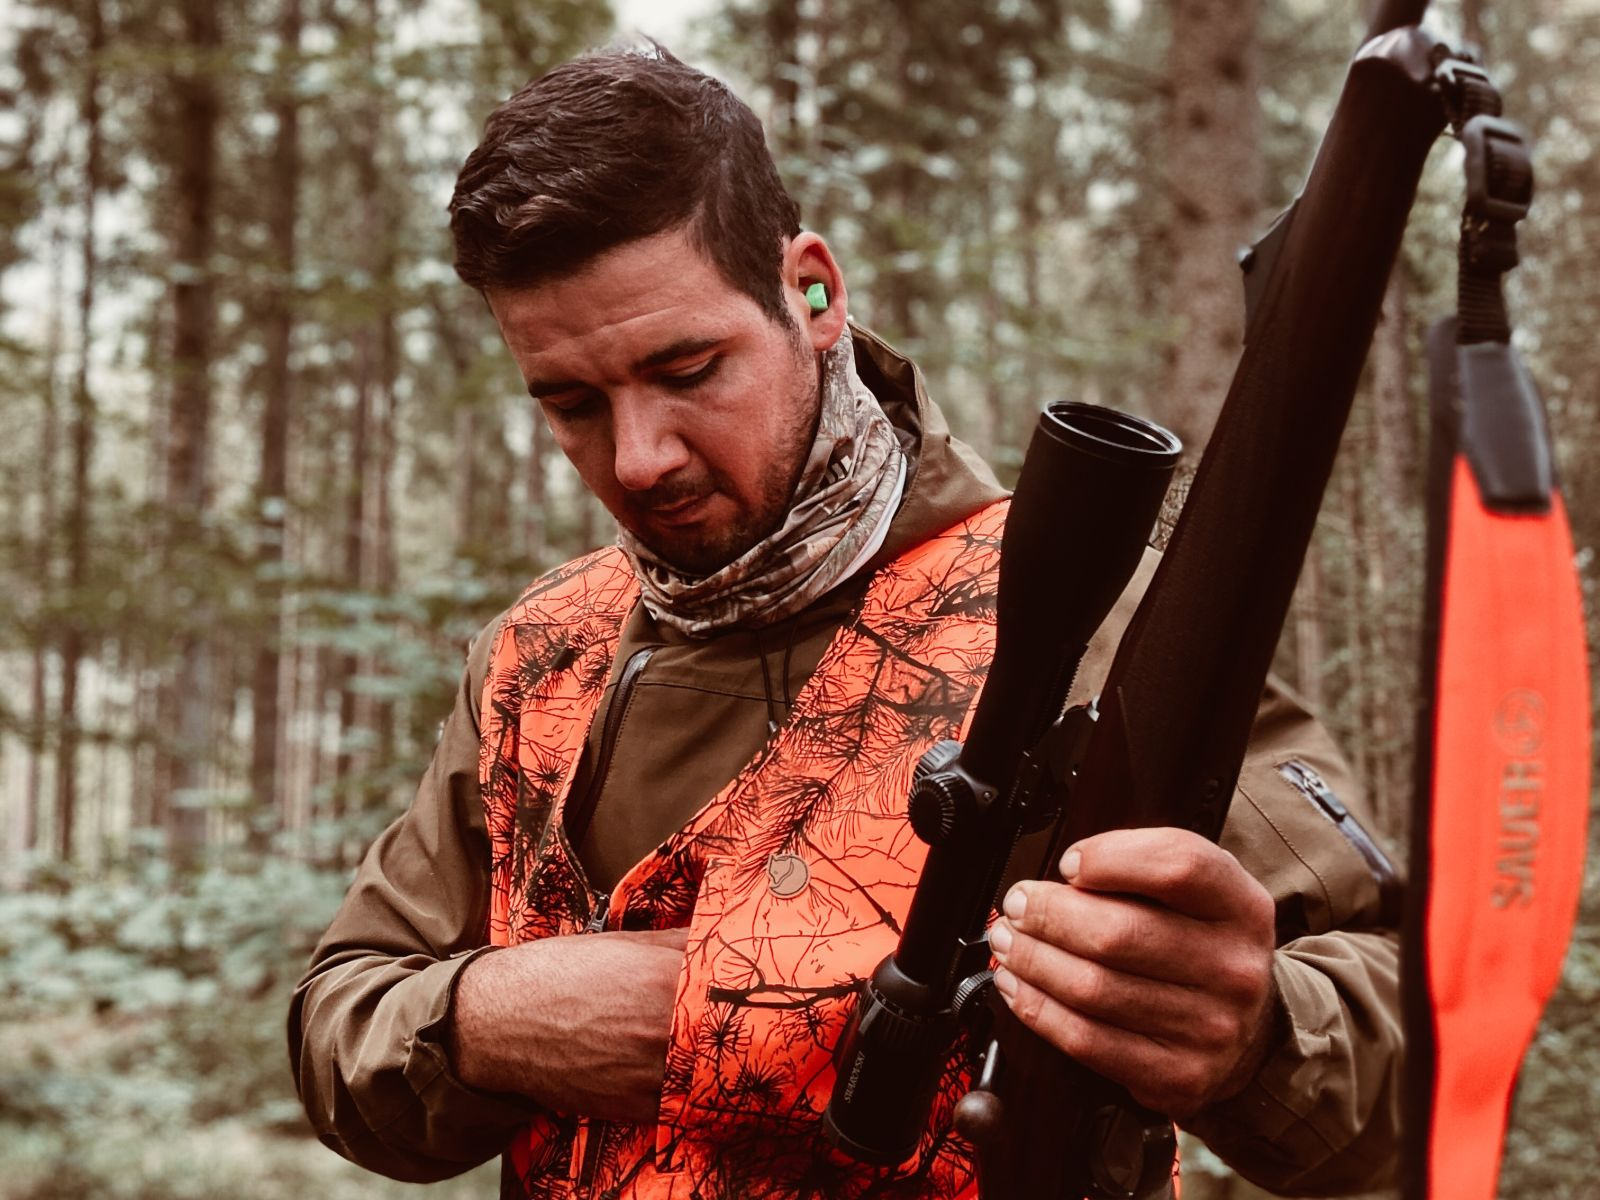 Join us on a driven hunt in Belgium - Dimitri Hullebroek